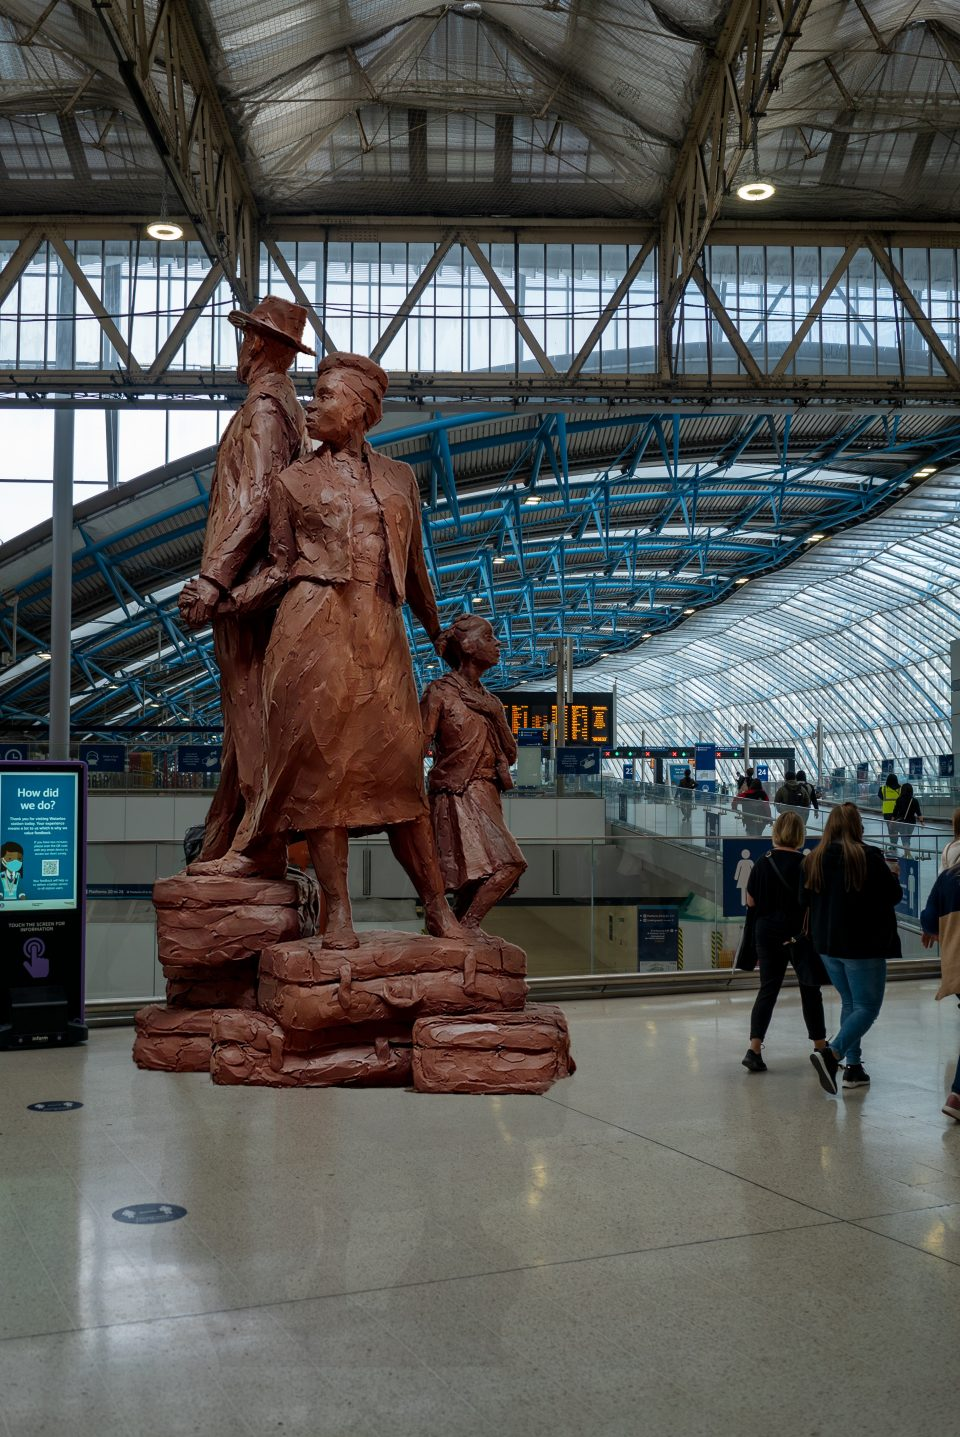 Basil Watson - proposed Windrush Monument in situ at Waterloo Station